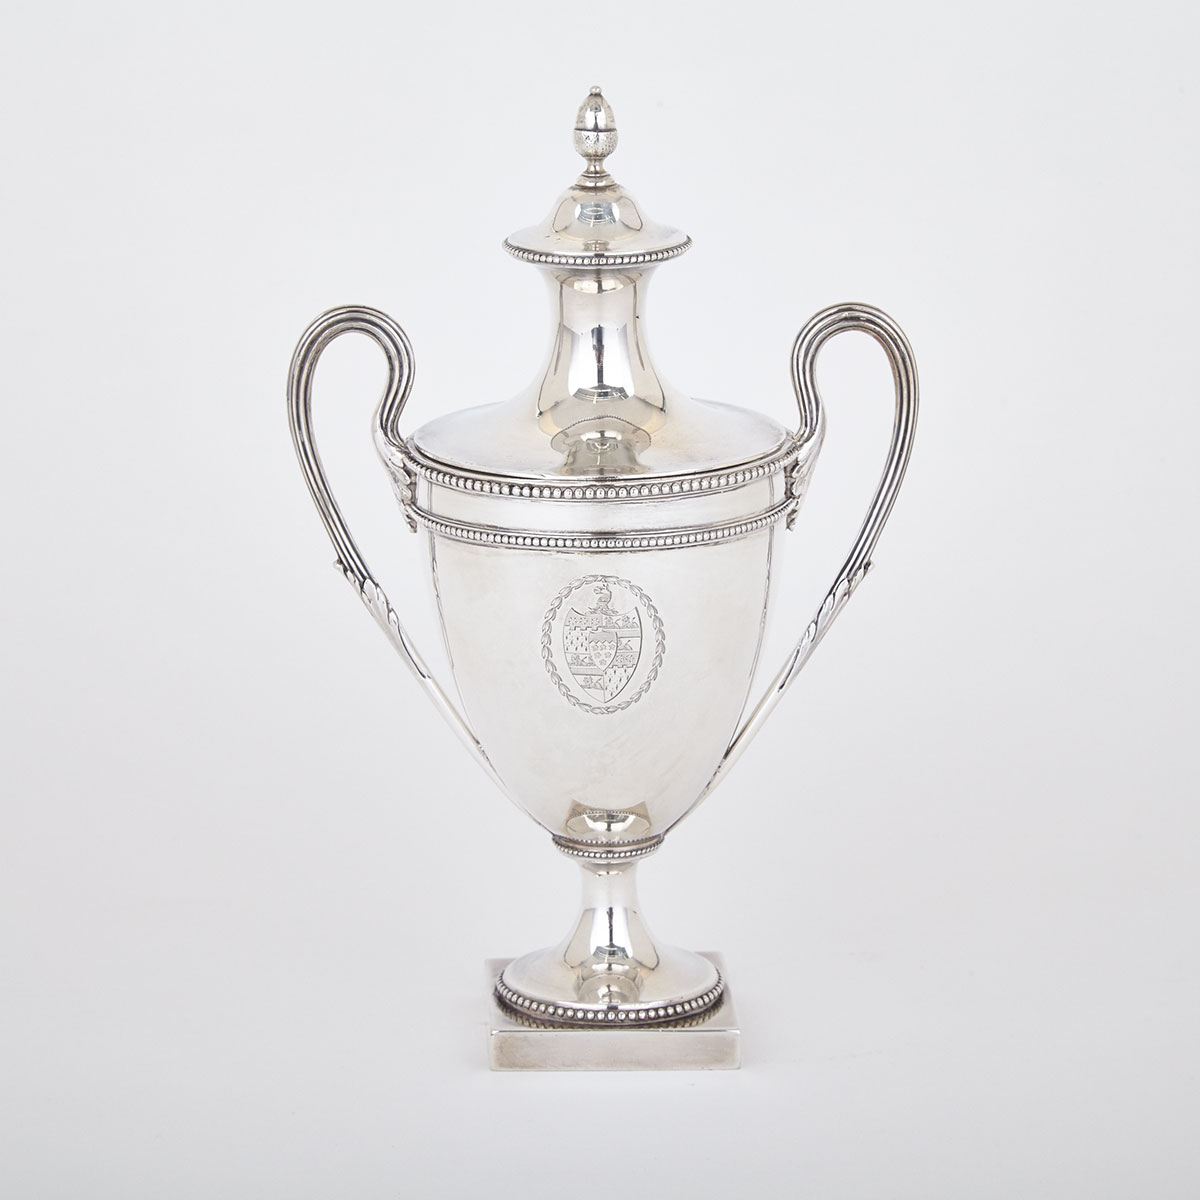 George III Silver Sugar Vase, Richard Carter, Daniel Smith & Robert Sharp, London, 1778